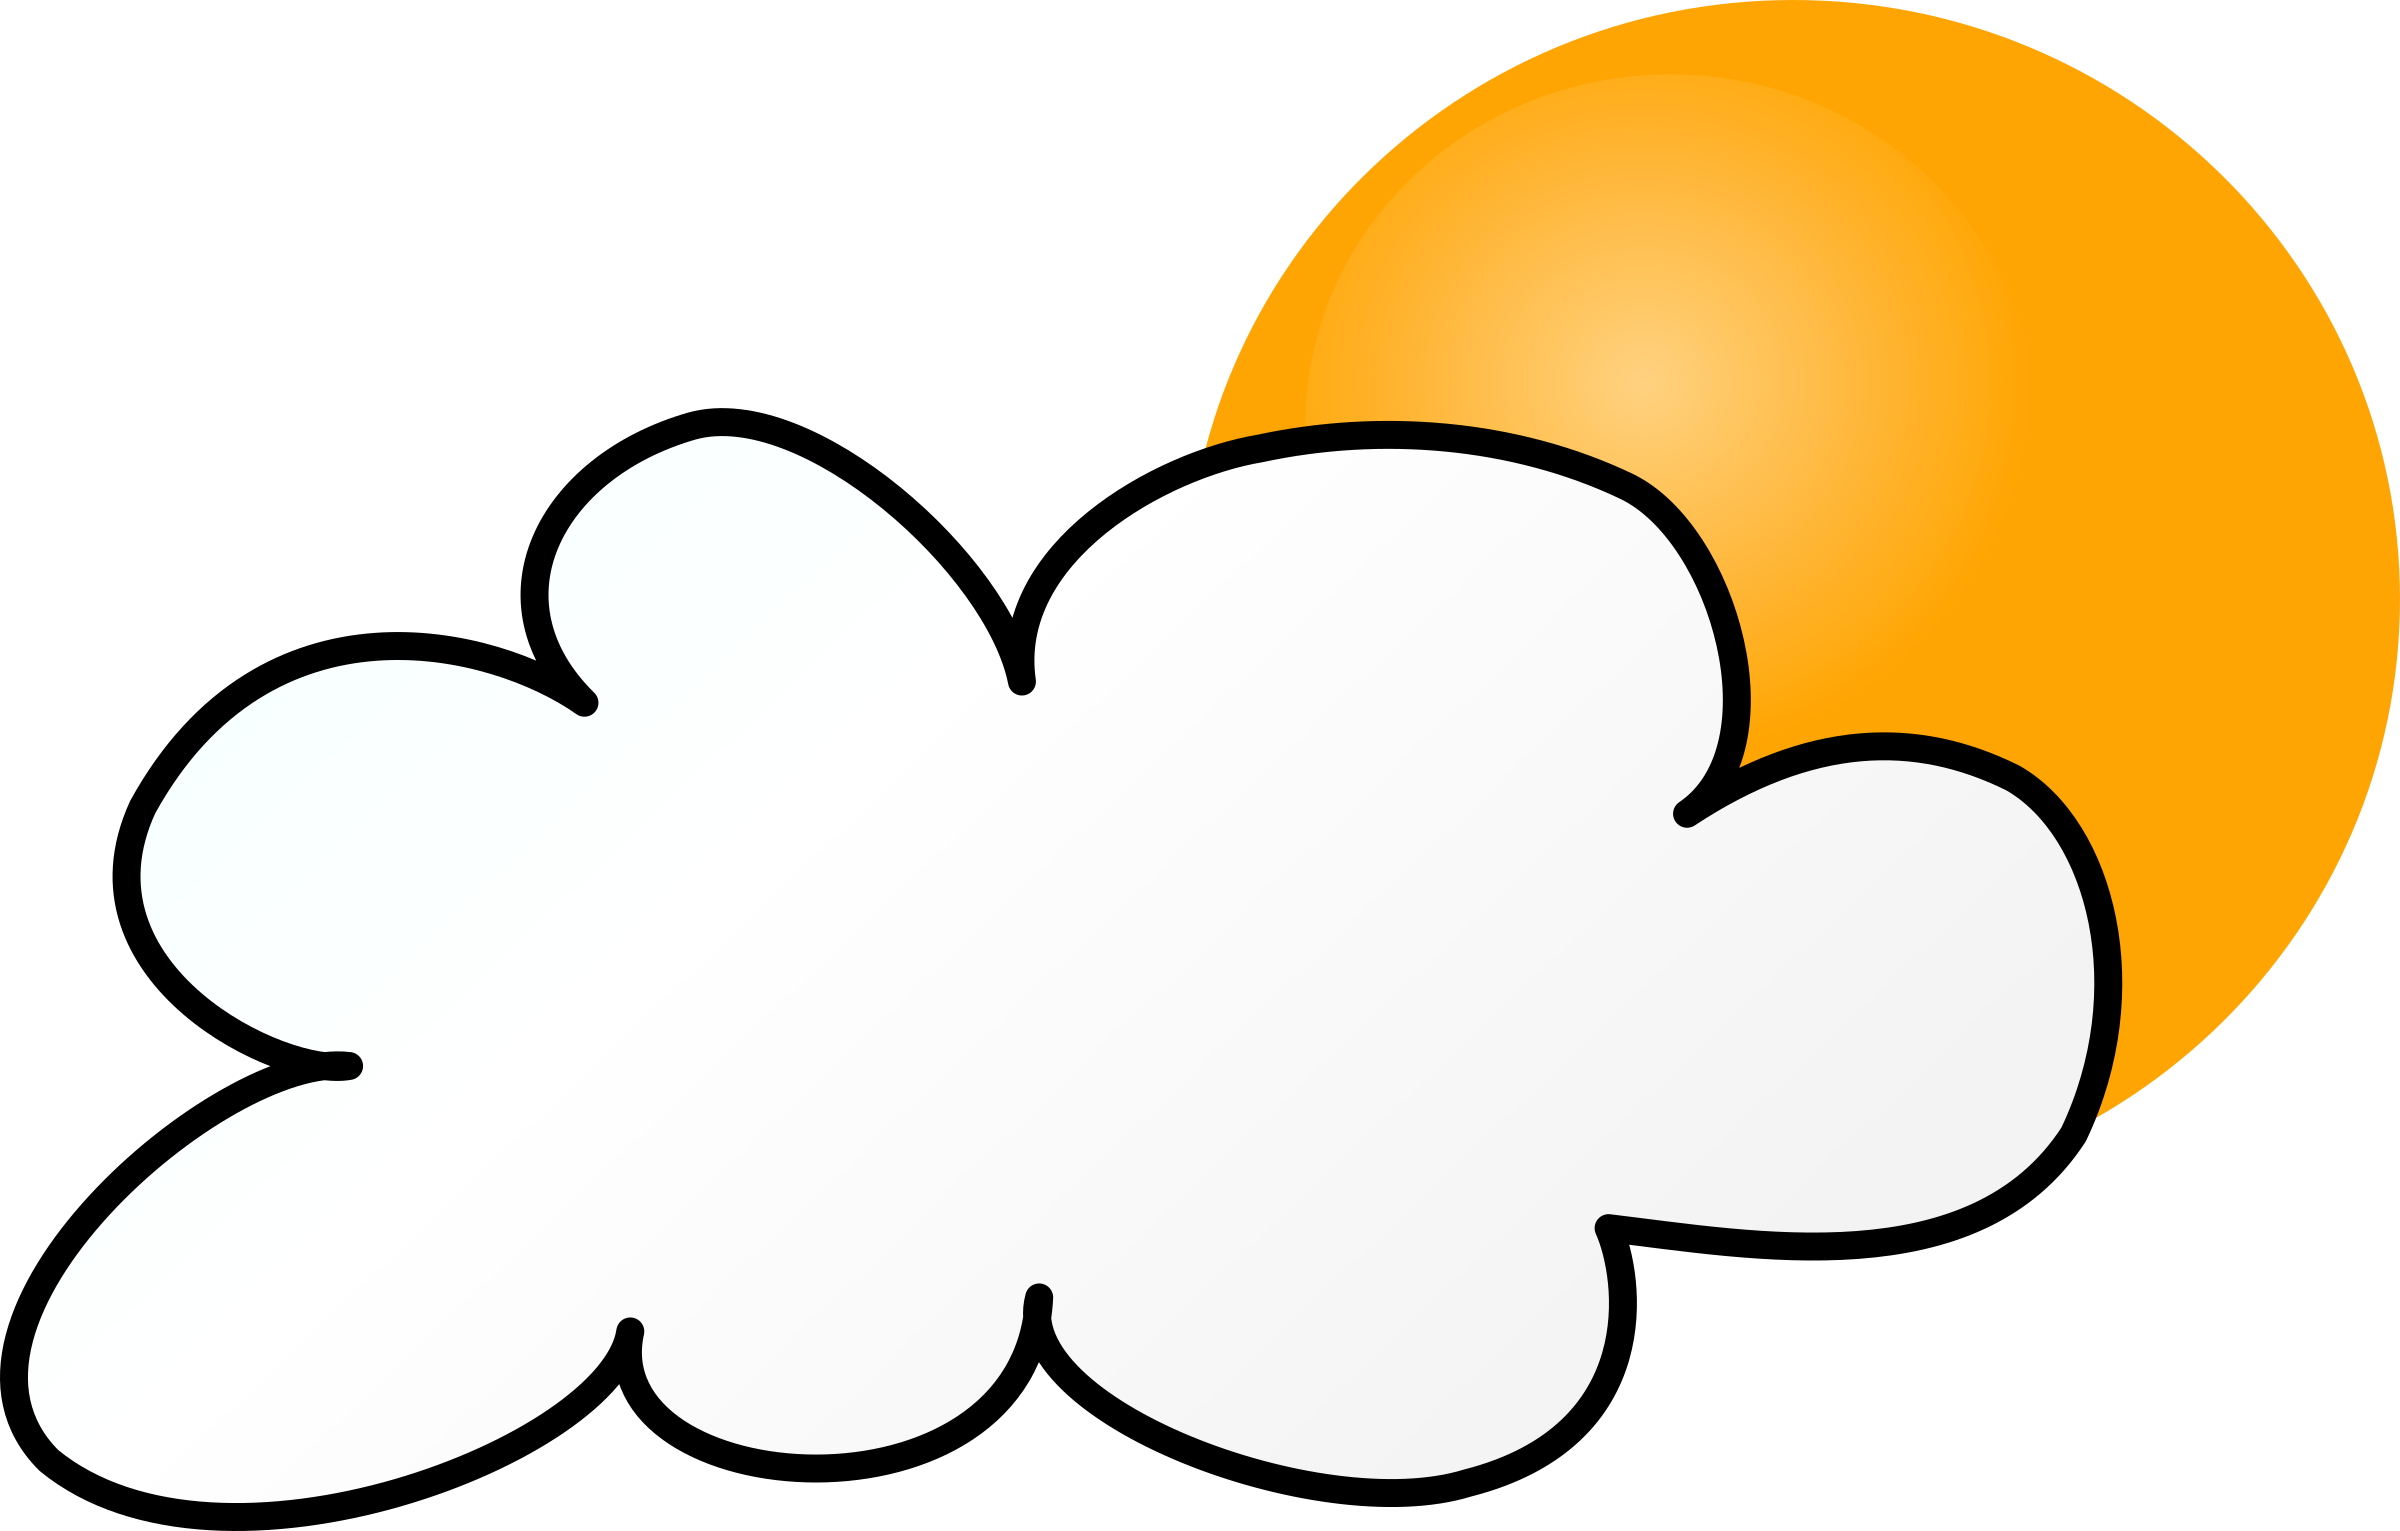 Weather symbols simple big. Cloudy clipart cloudy day